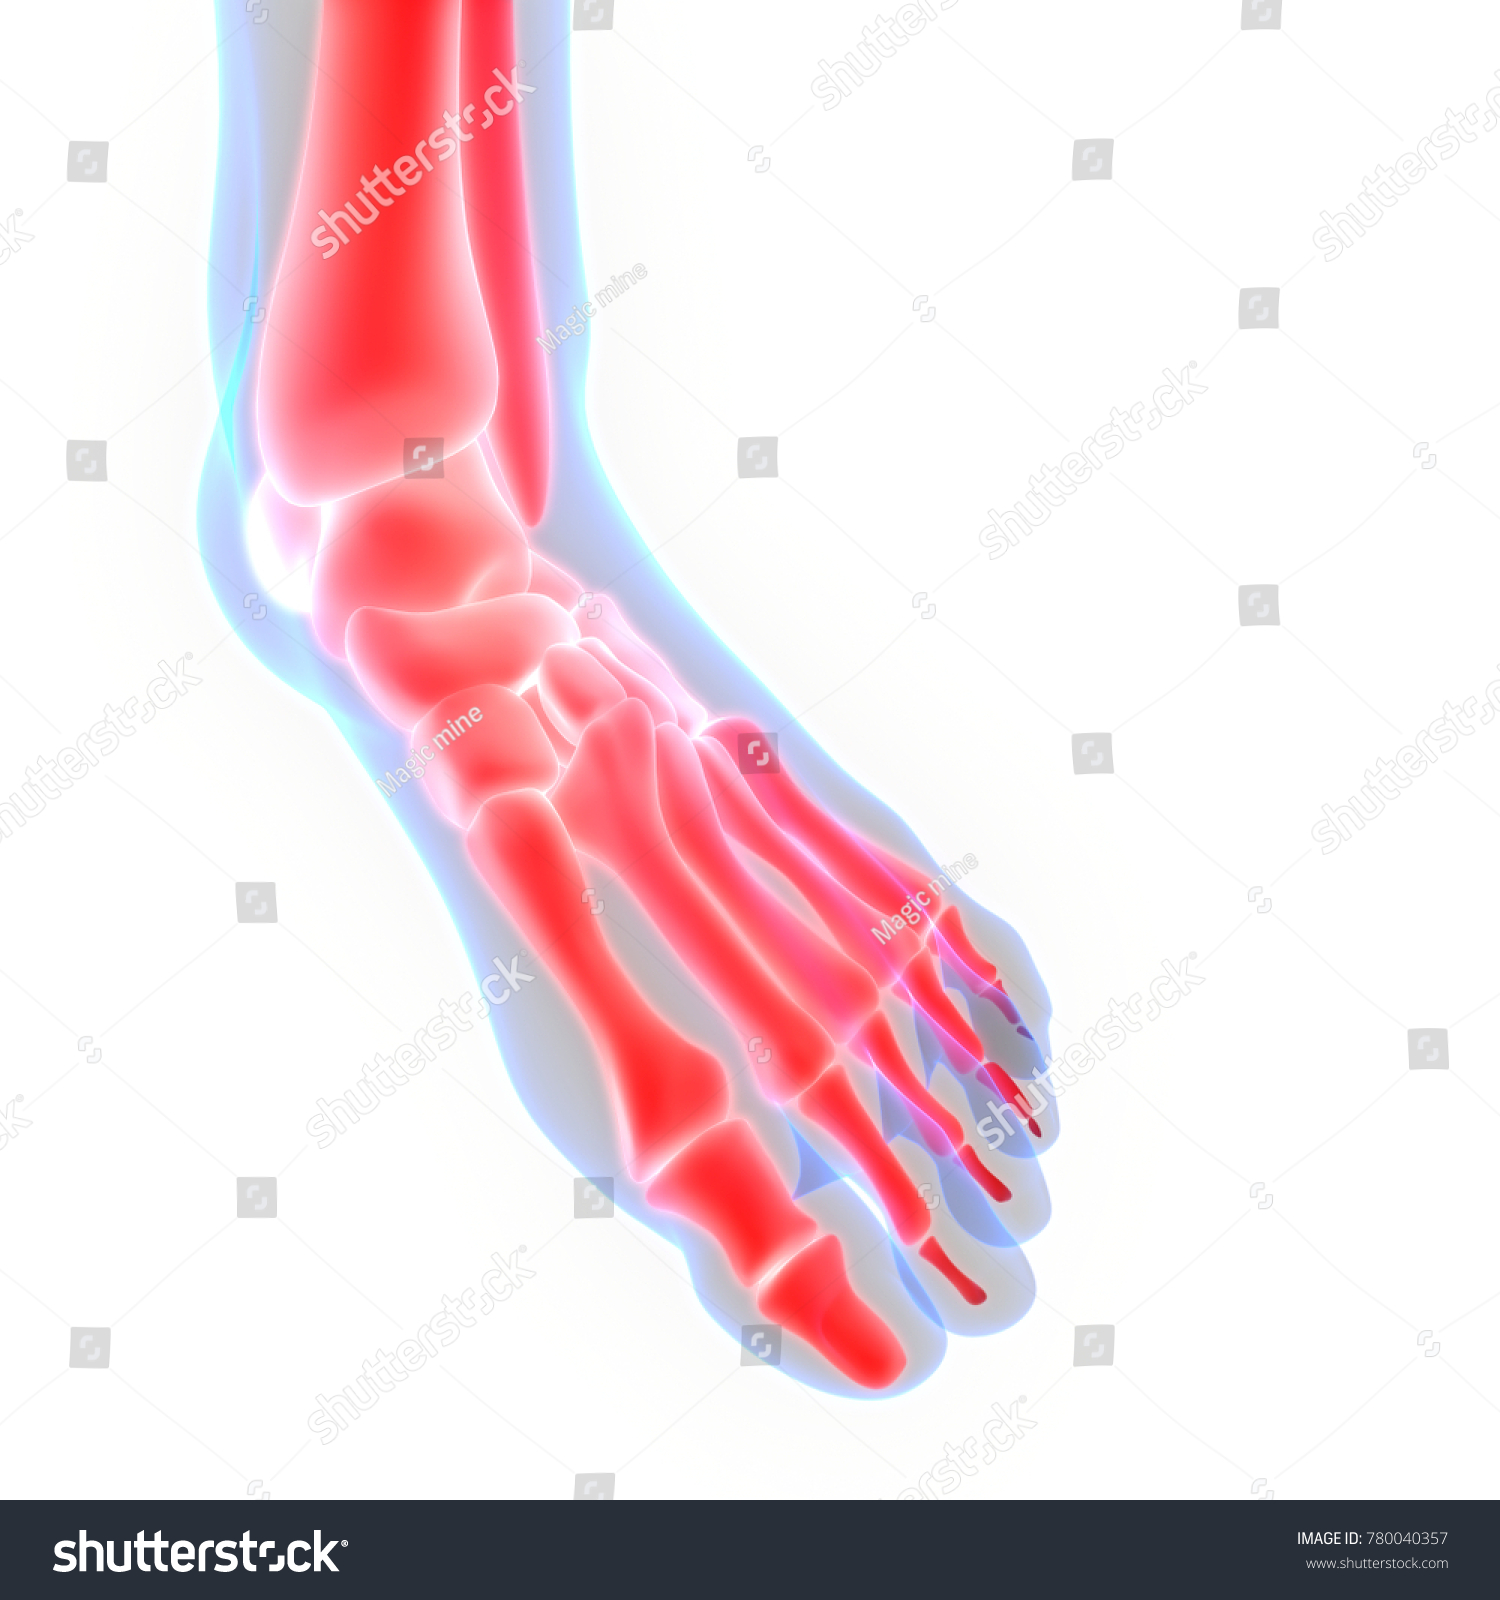 Human Skeleton System Foot Joints Anatomy Stock Illustration